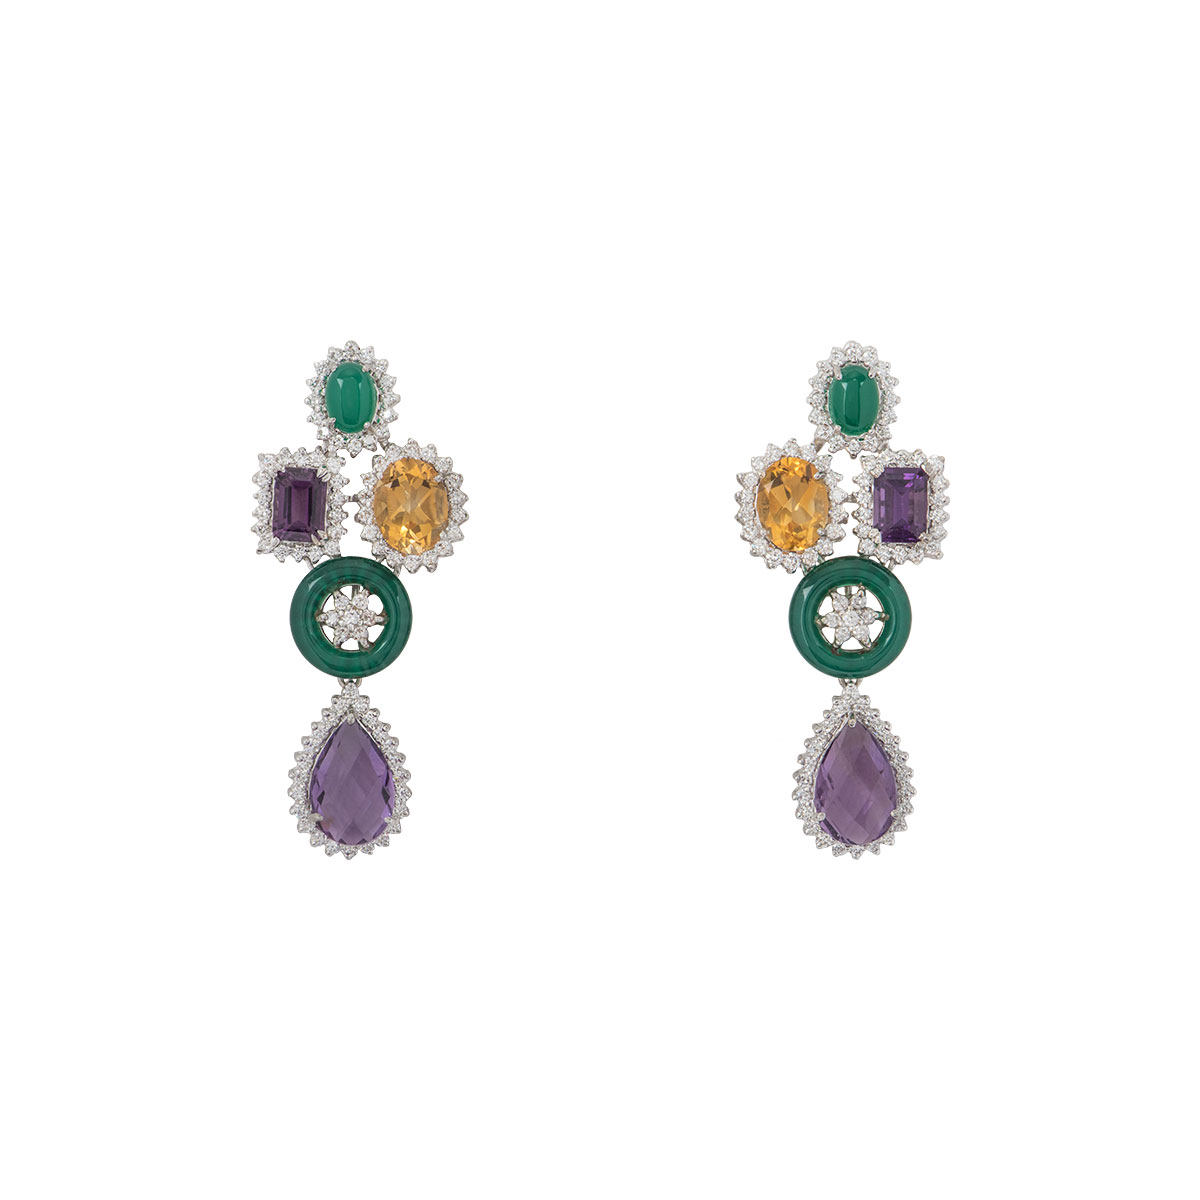 White Gold Diamond and Multi-Gem Earrings